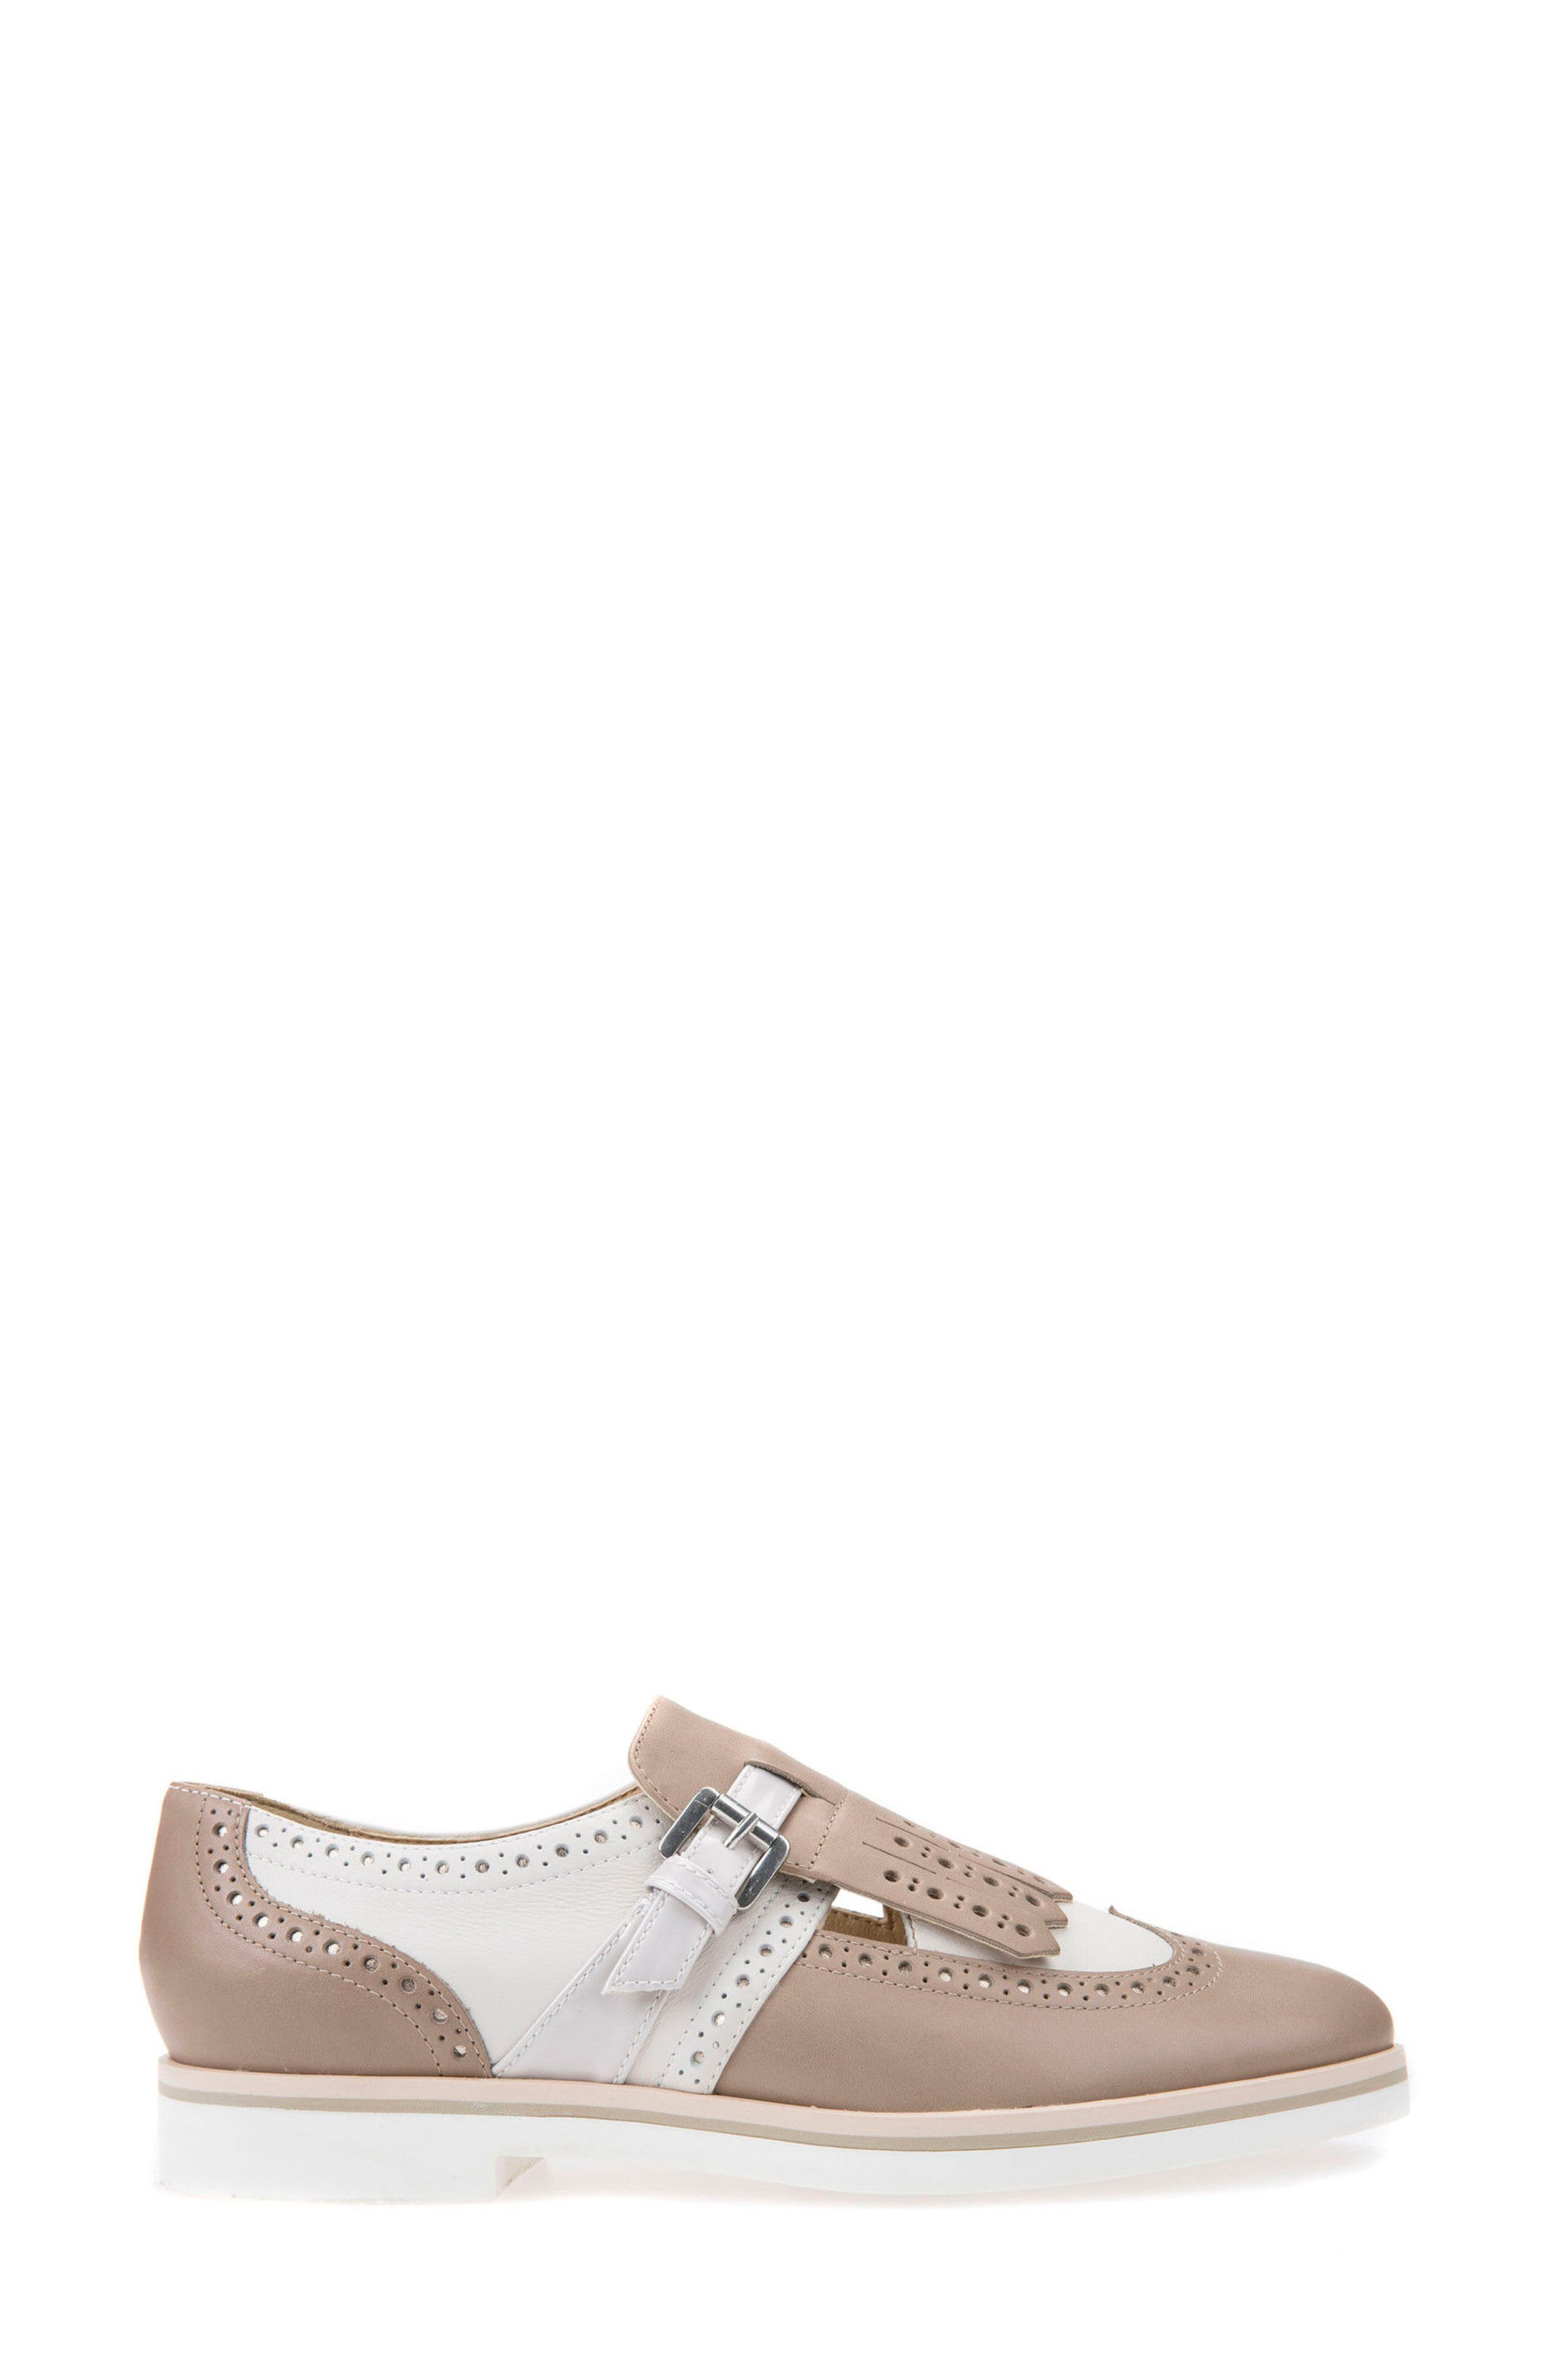 Janalee Cutout Loafer,                             Alternate thumbnail 3, color,                             Sand Leather